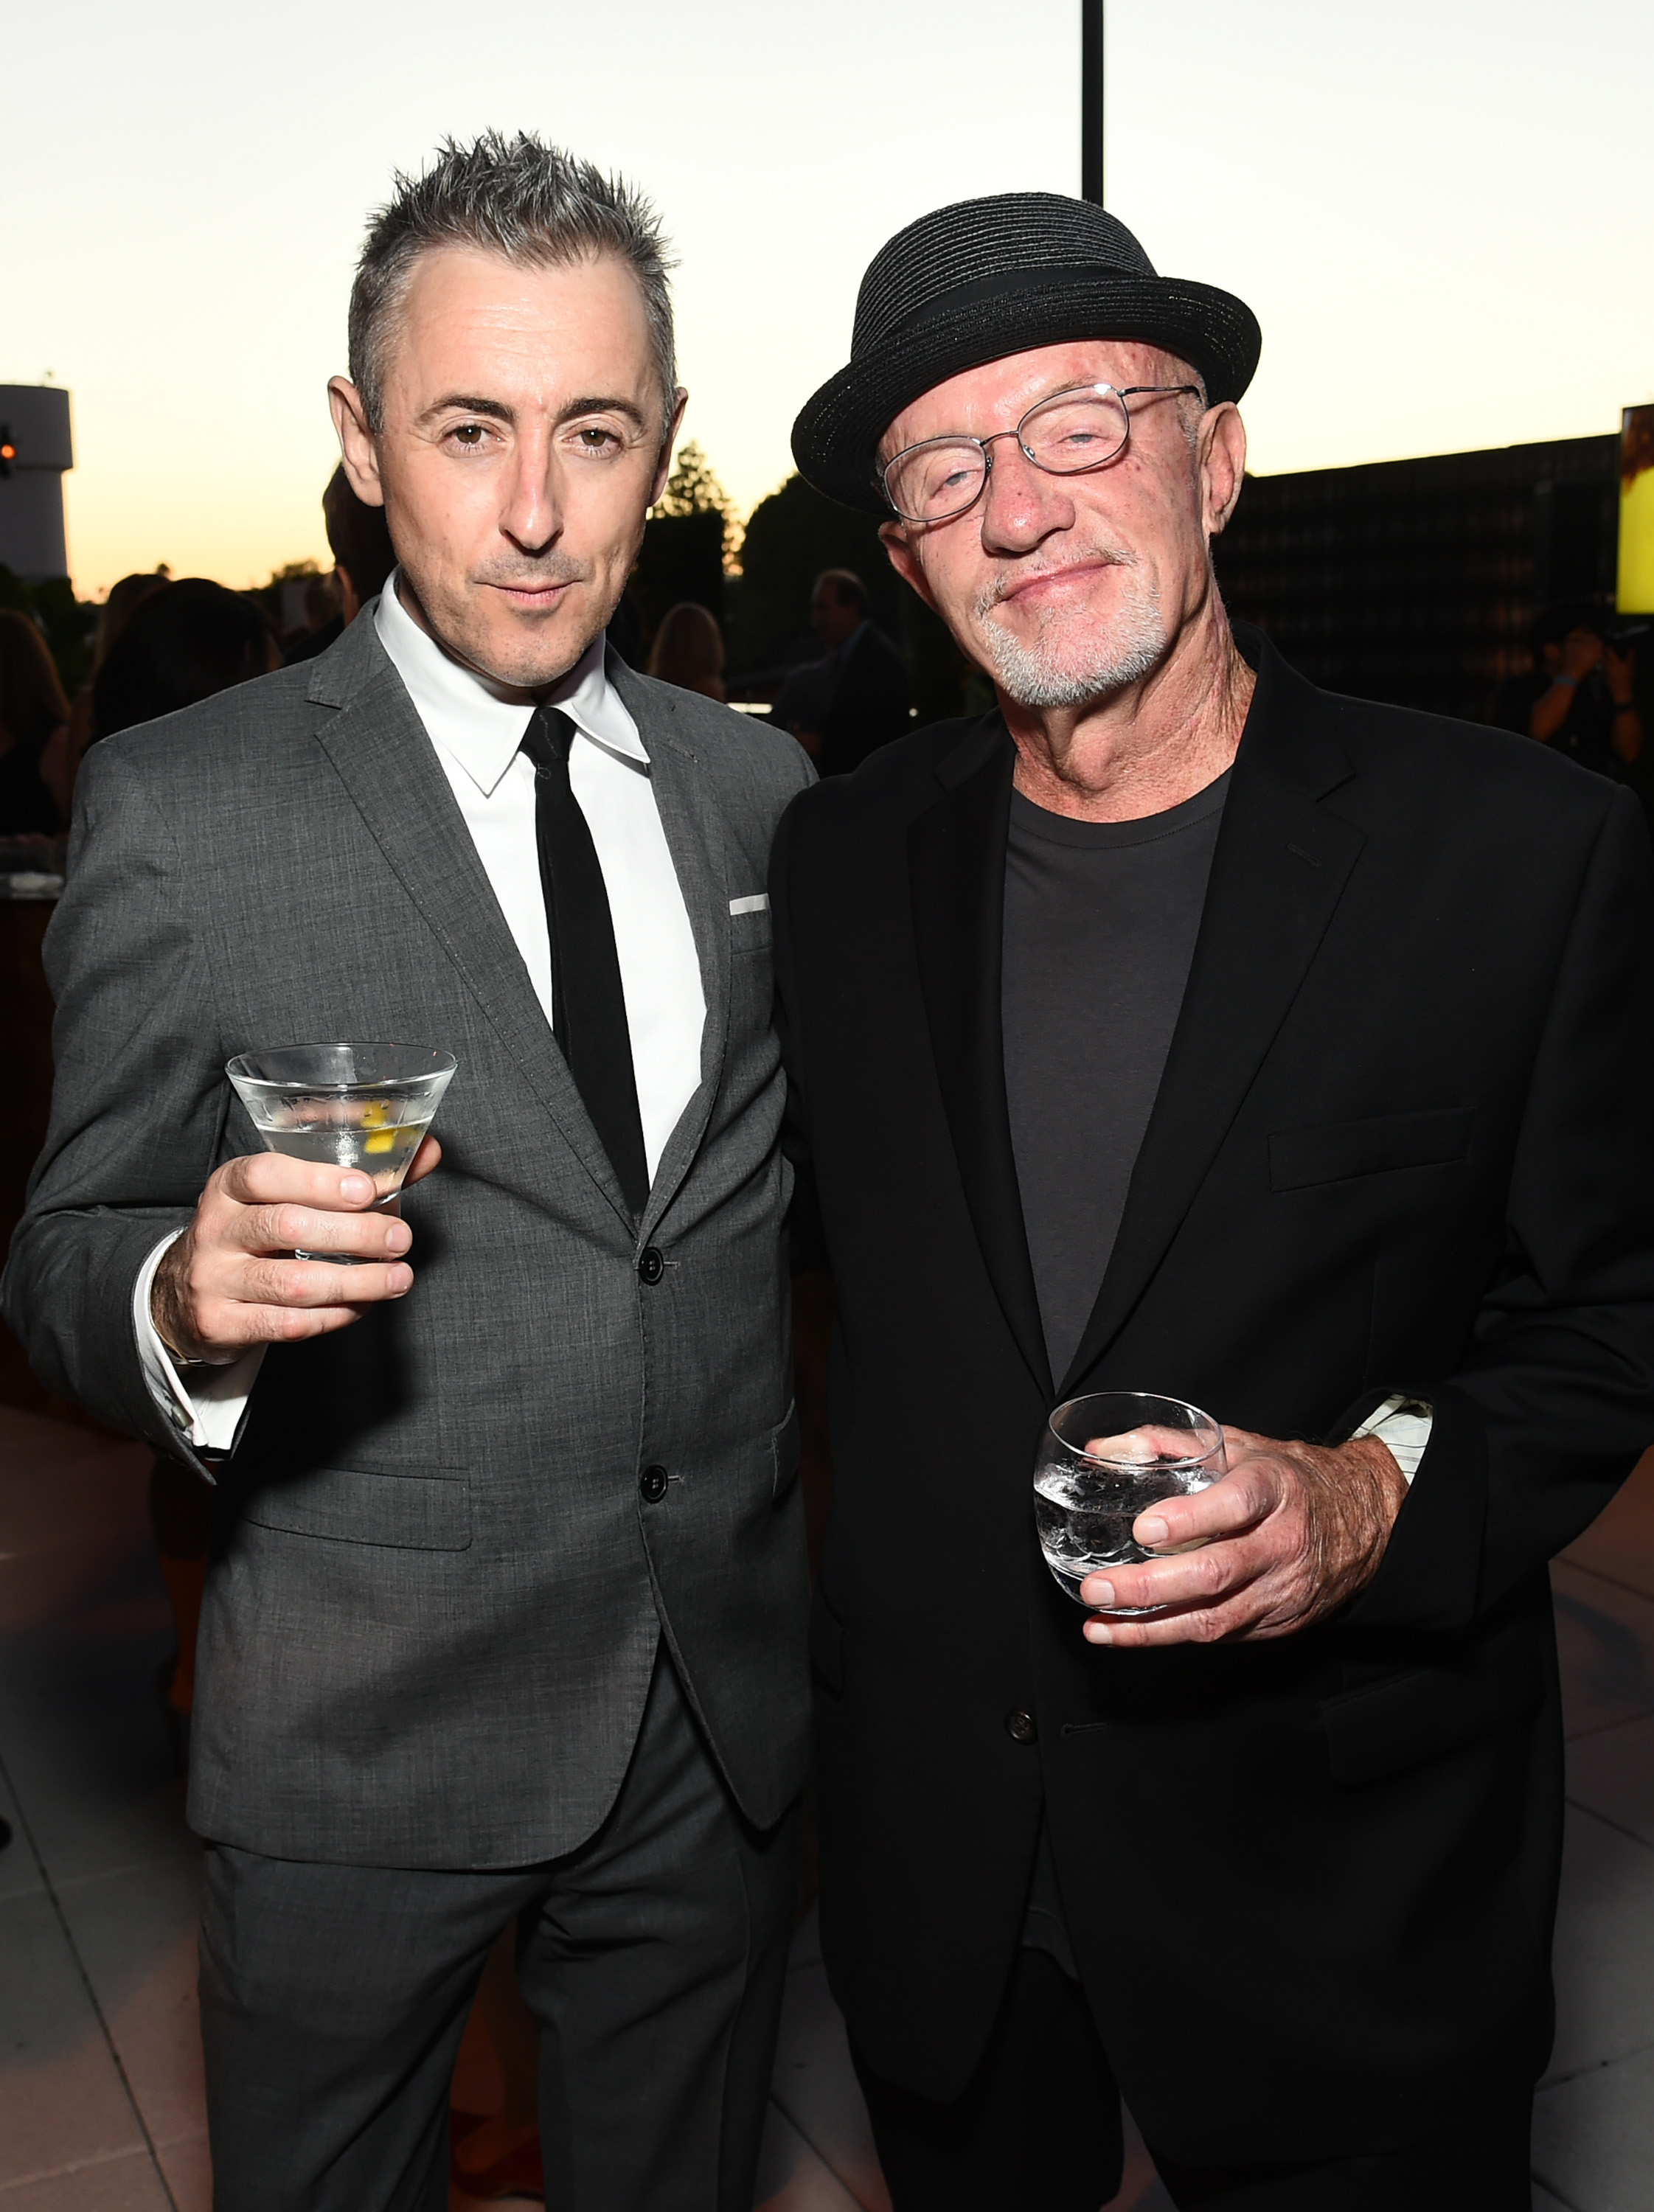 EXCLUSIVE - Alan Cumming, left, and Jonathan Banks attend the Television Academy's 67th Emmy Awards Performers Nominee Reception at the Pacific Design Center on Saturday, Sept.19, 2015, in West Hollywood, Calif. (Photo by Charles Sykes/Invision for the Television Academy/AP Images)